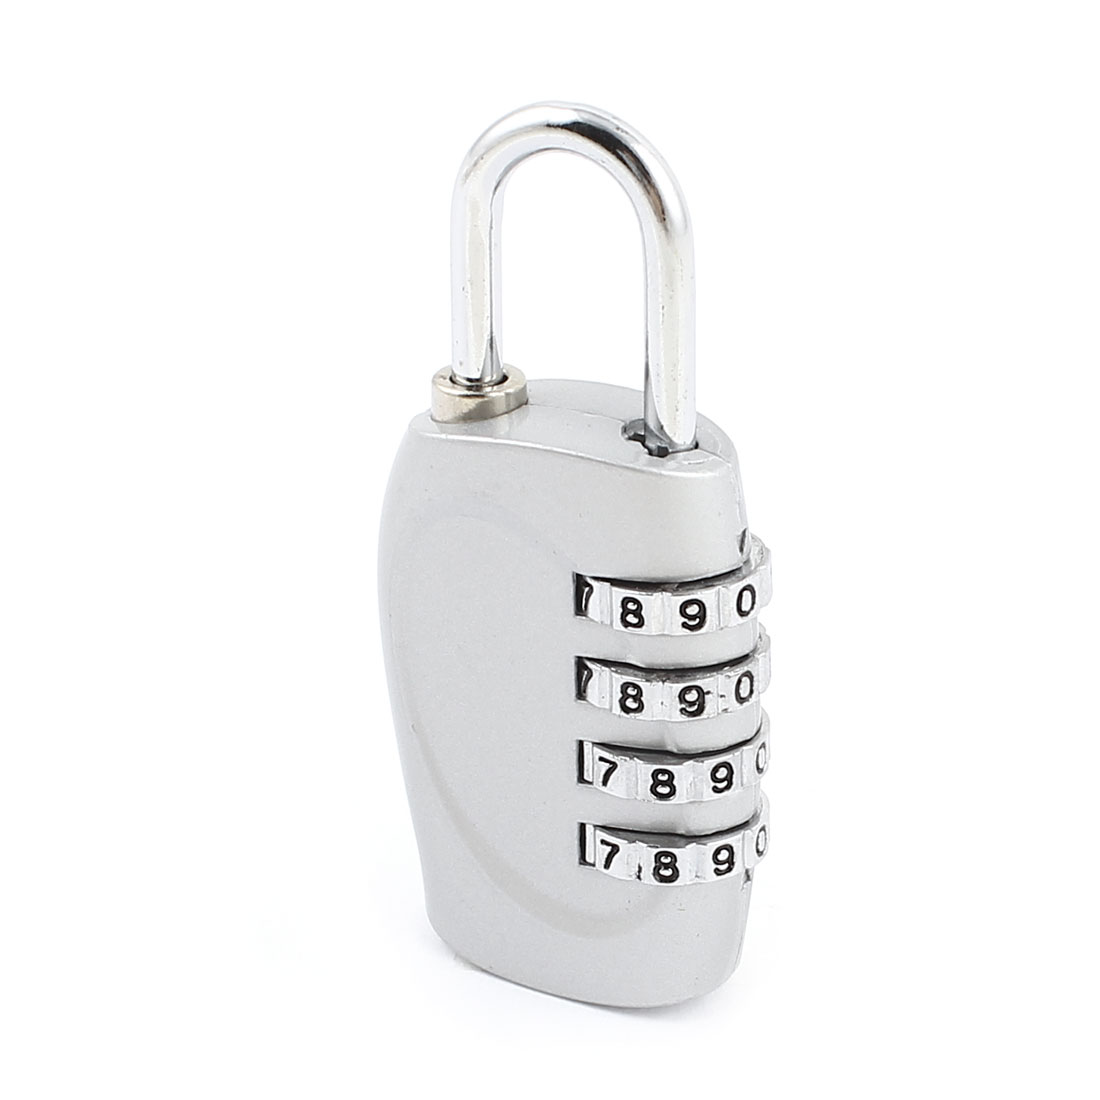 Backpack 4 Digits Combination Dial Lock Password Safety Padlock Silver Tone